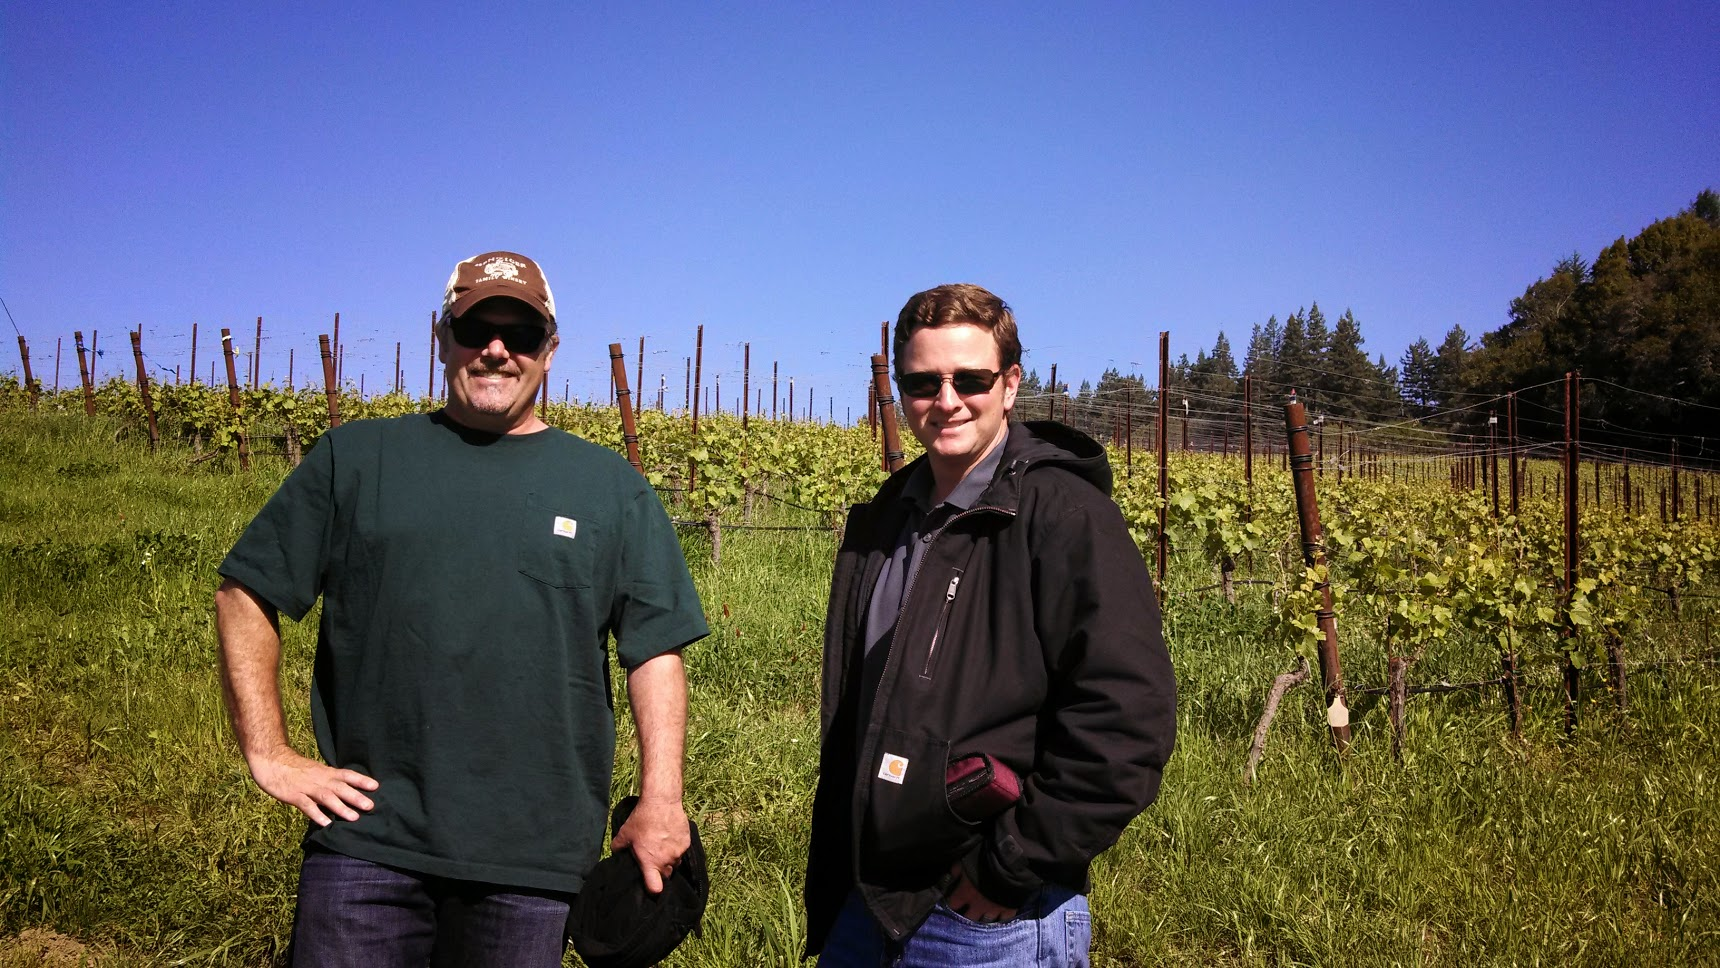 My amazing tour guides. Chris Benziger, National Sales Manager, and Jeff Landolt, Viticulture Operations Coordinator at the deCoelo Vineyard, Sonoma Coast.